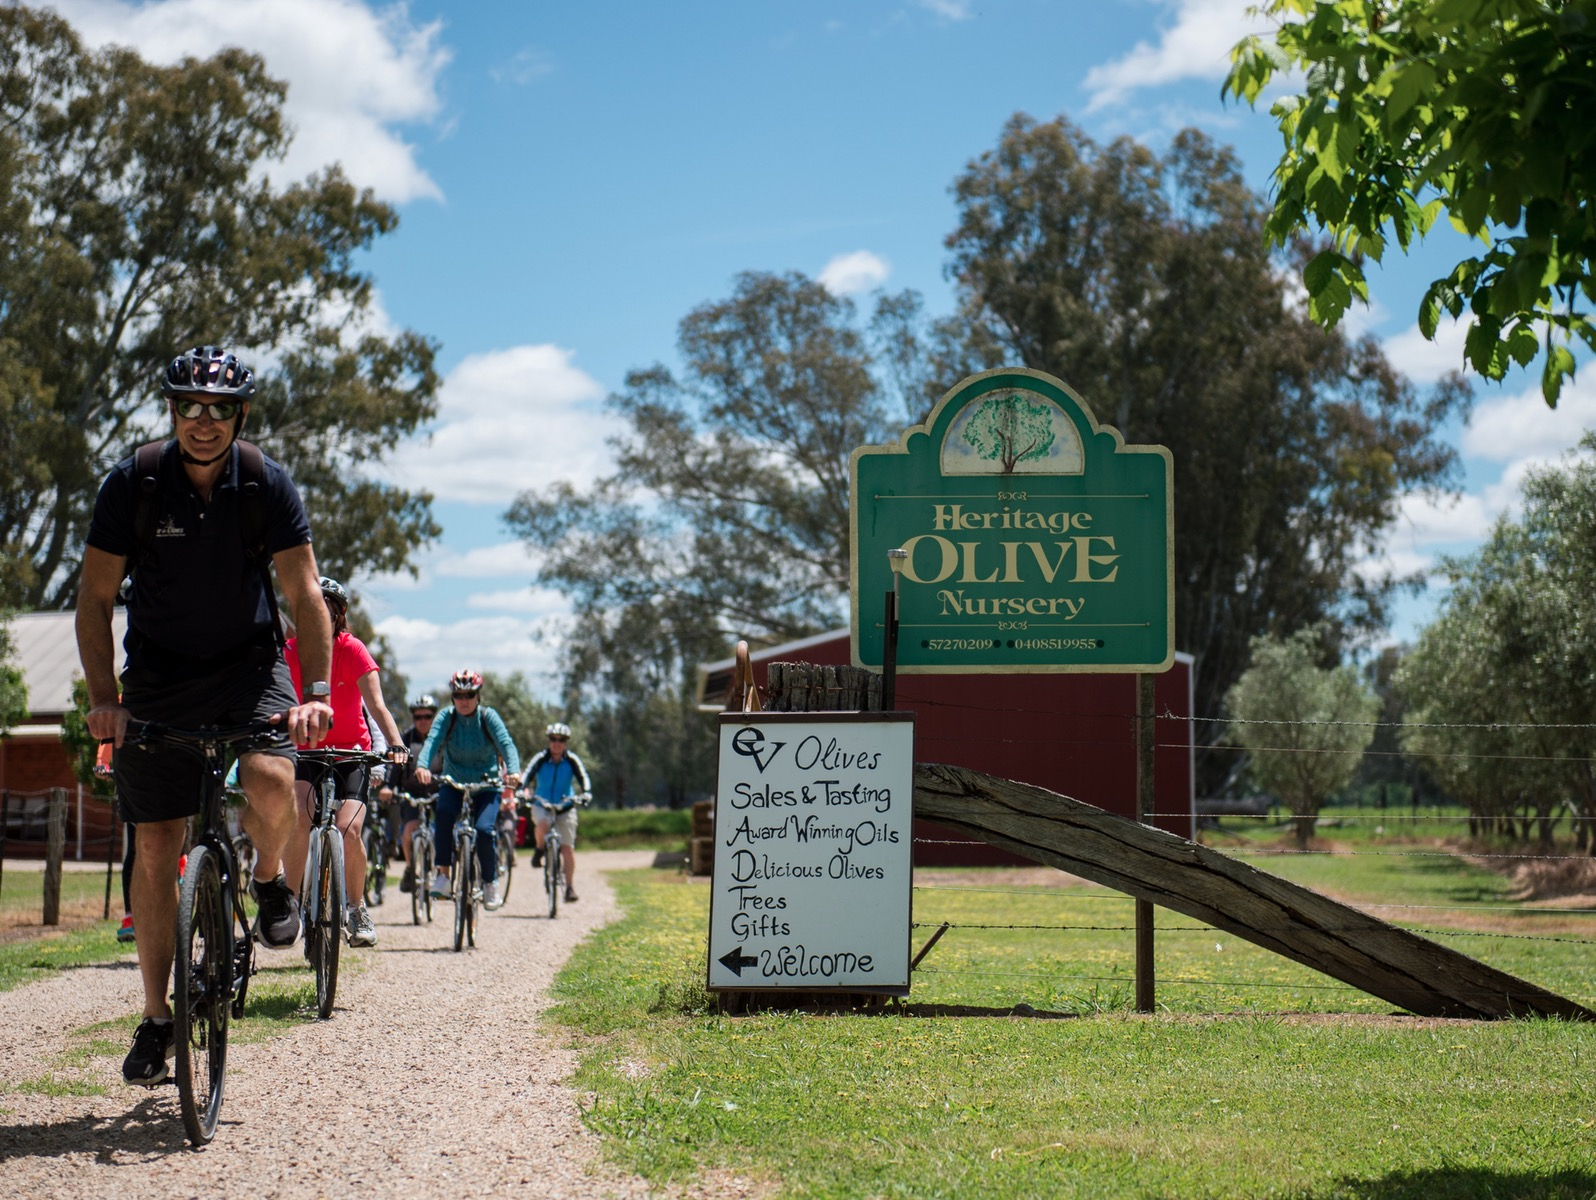 On a cycling tour in North East Victoria